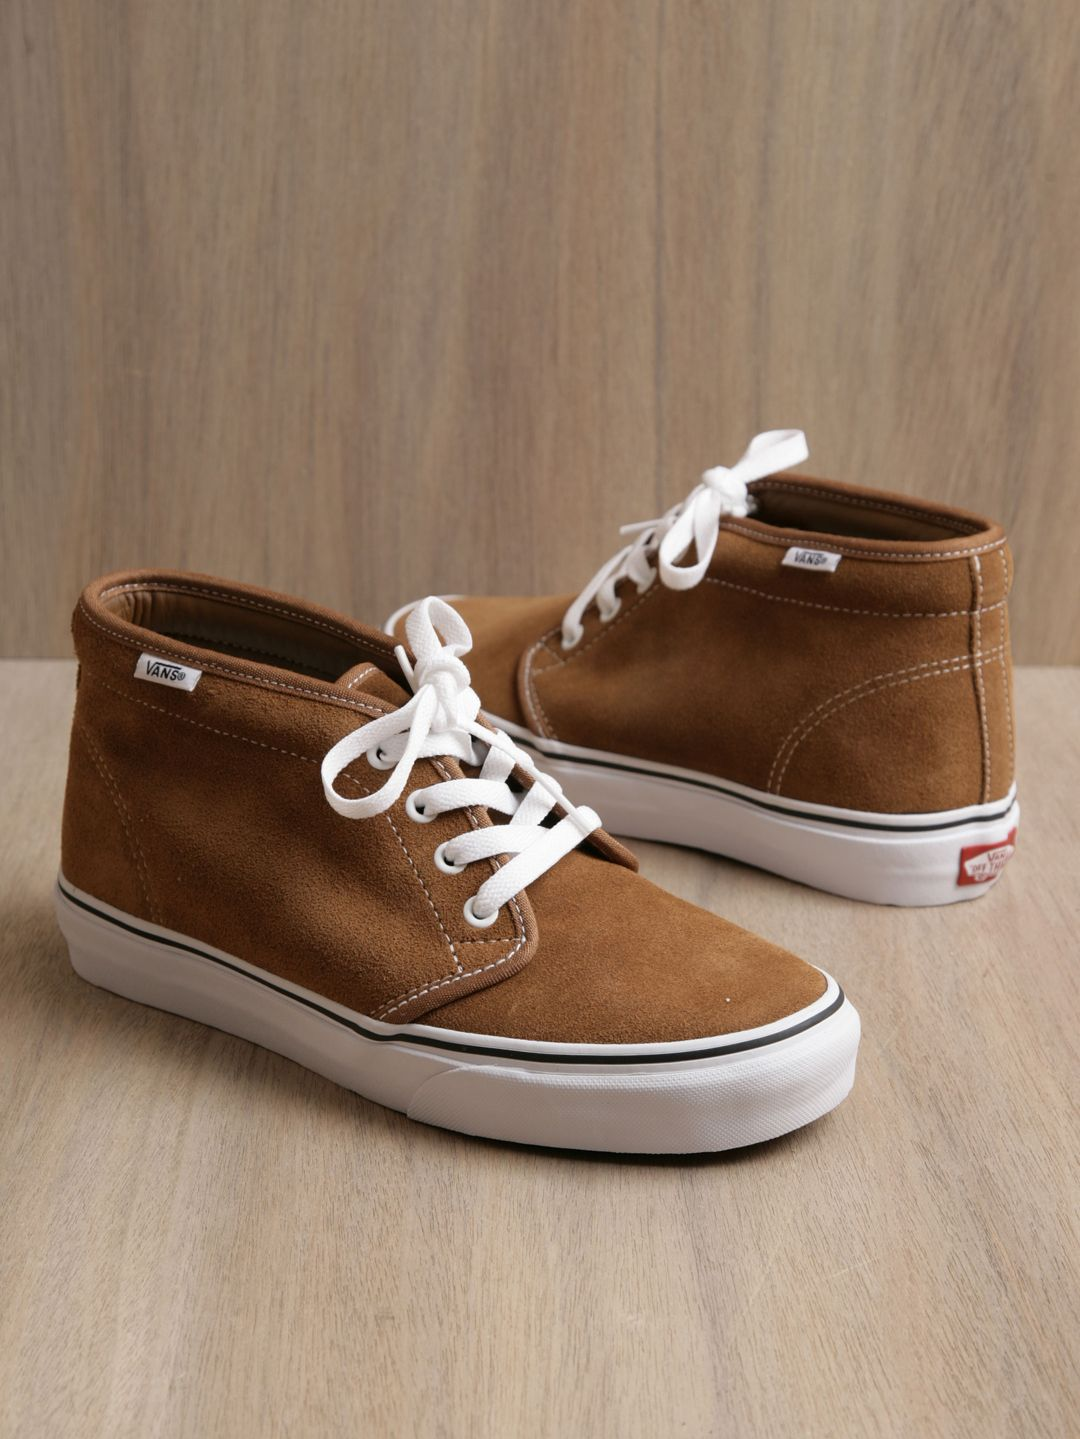 d08fcef5f6e Vans tan suede chukka boot. I would change the laces to match the ...